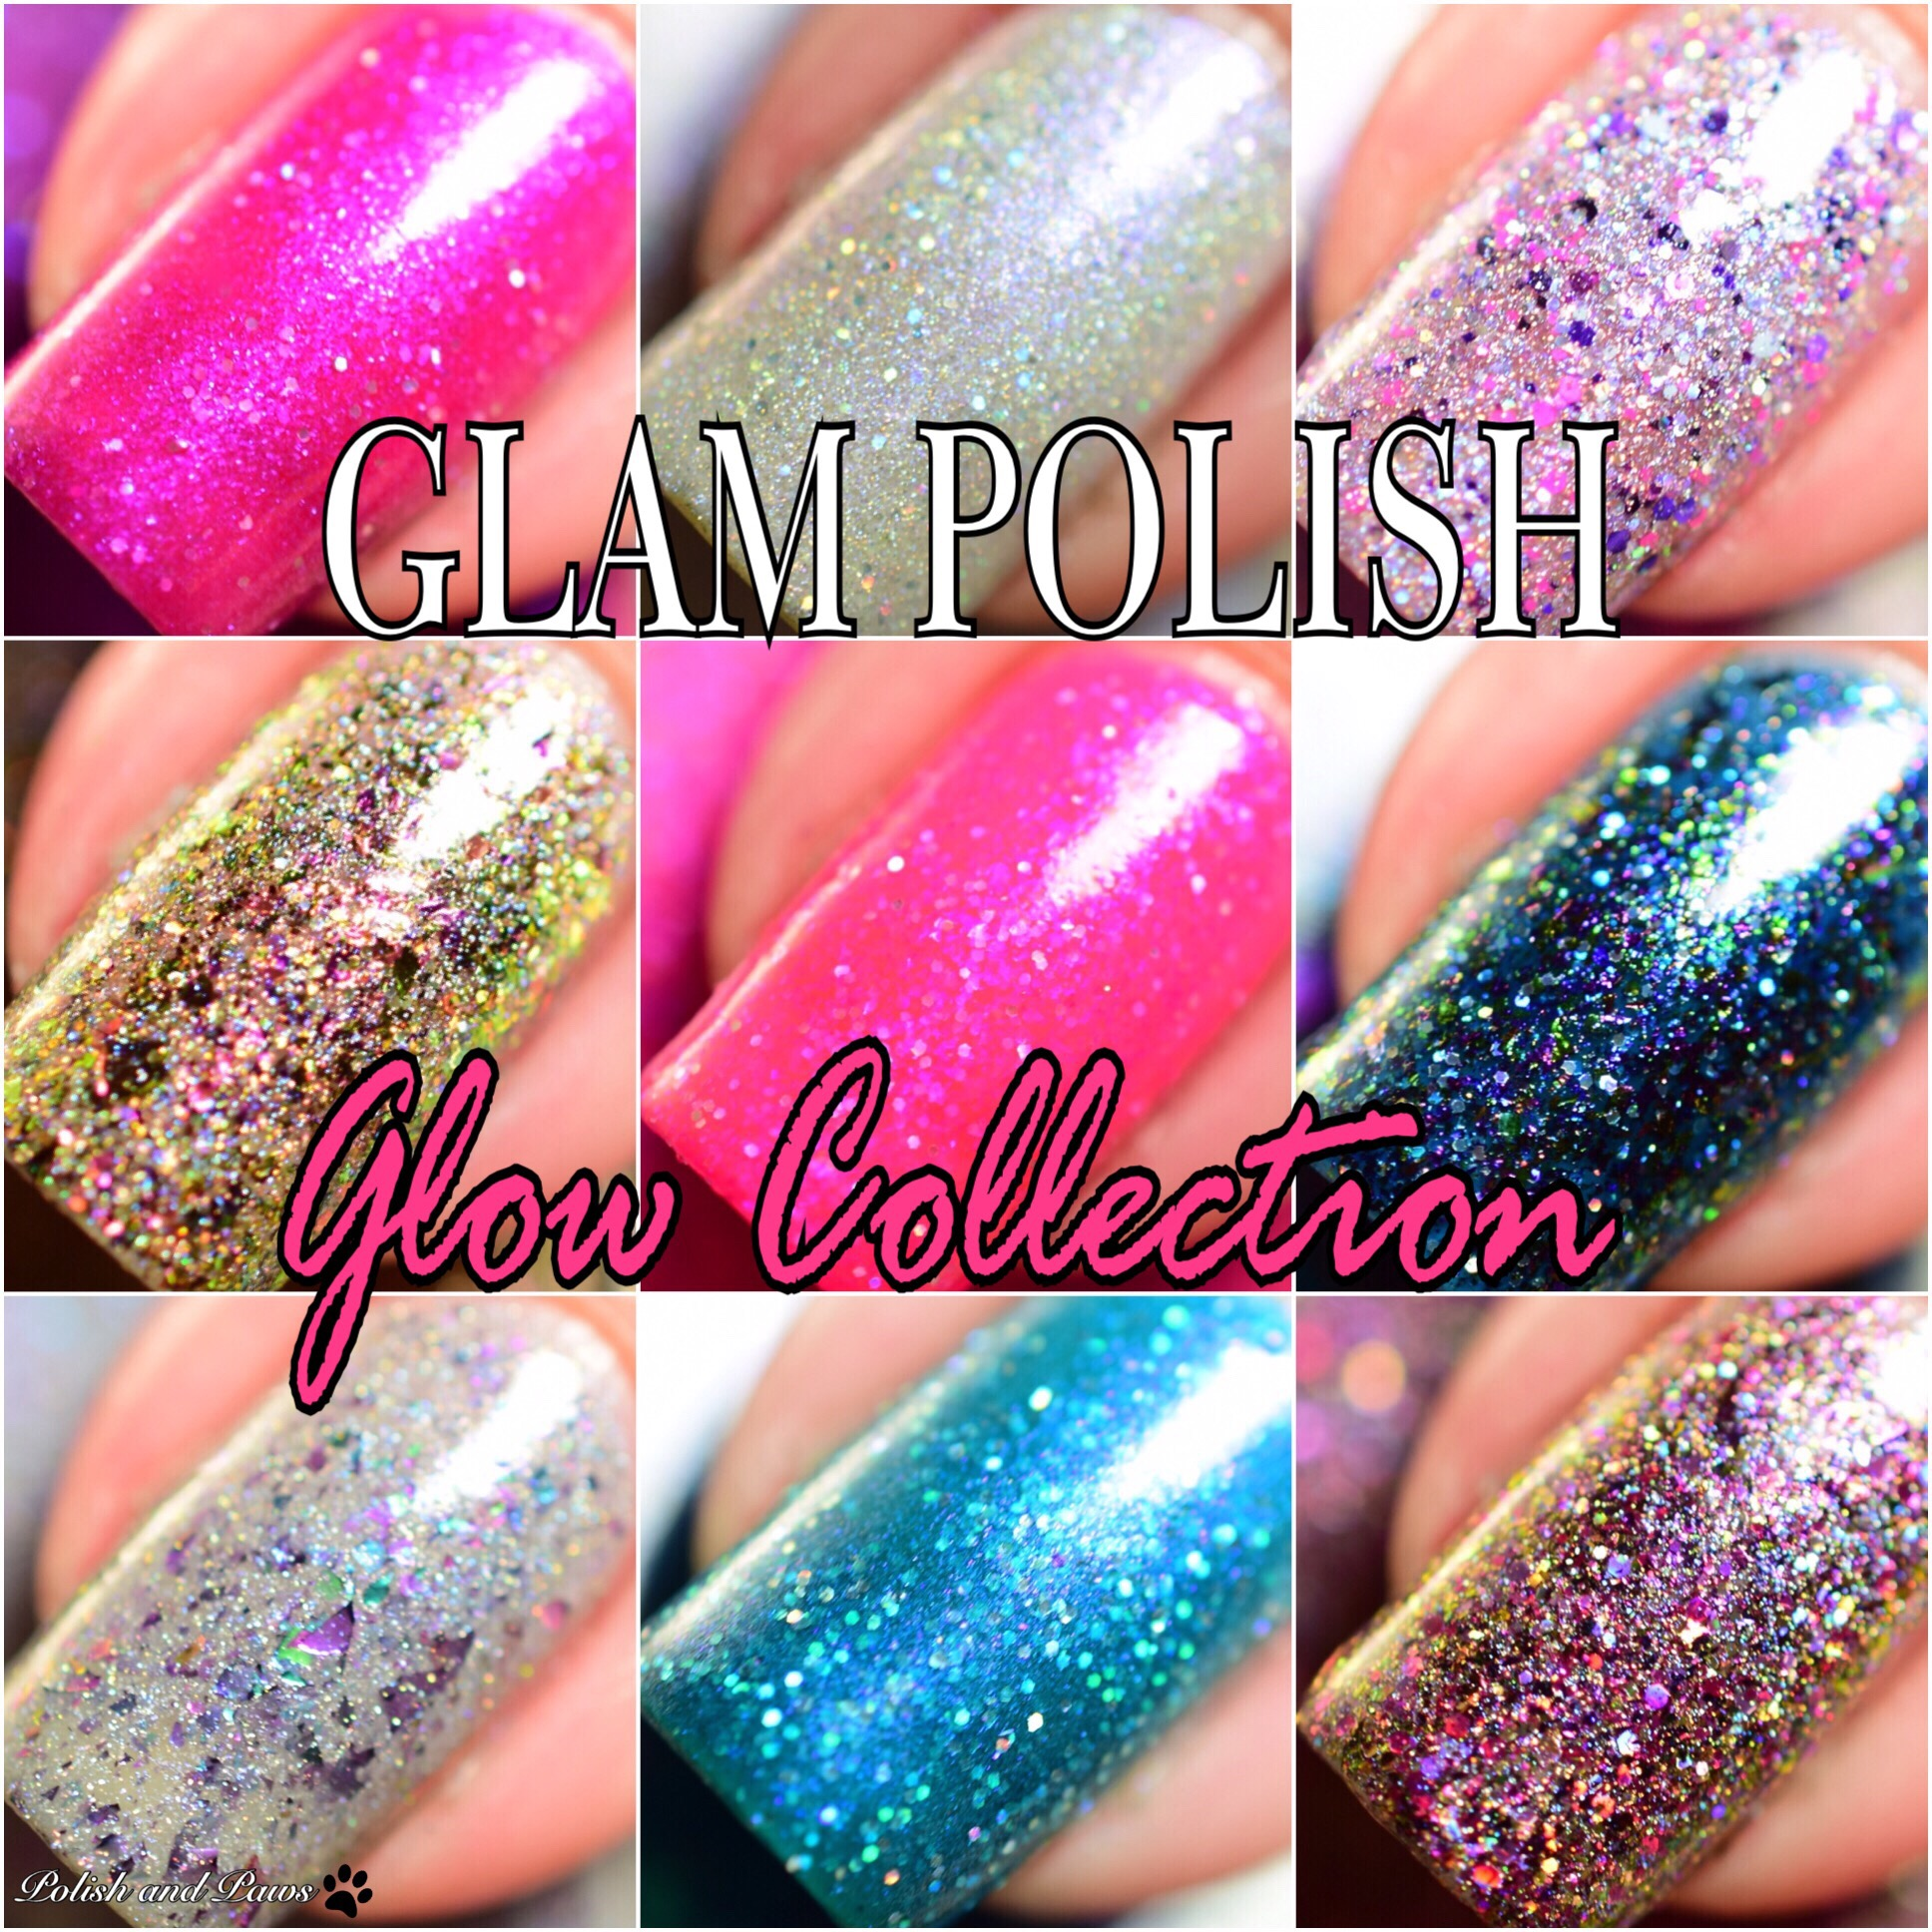 Glam Polish Glow Collection